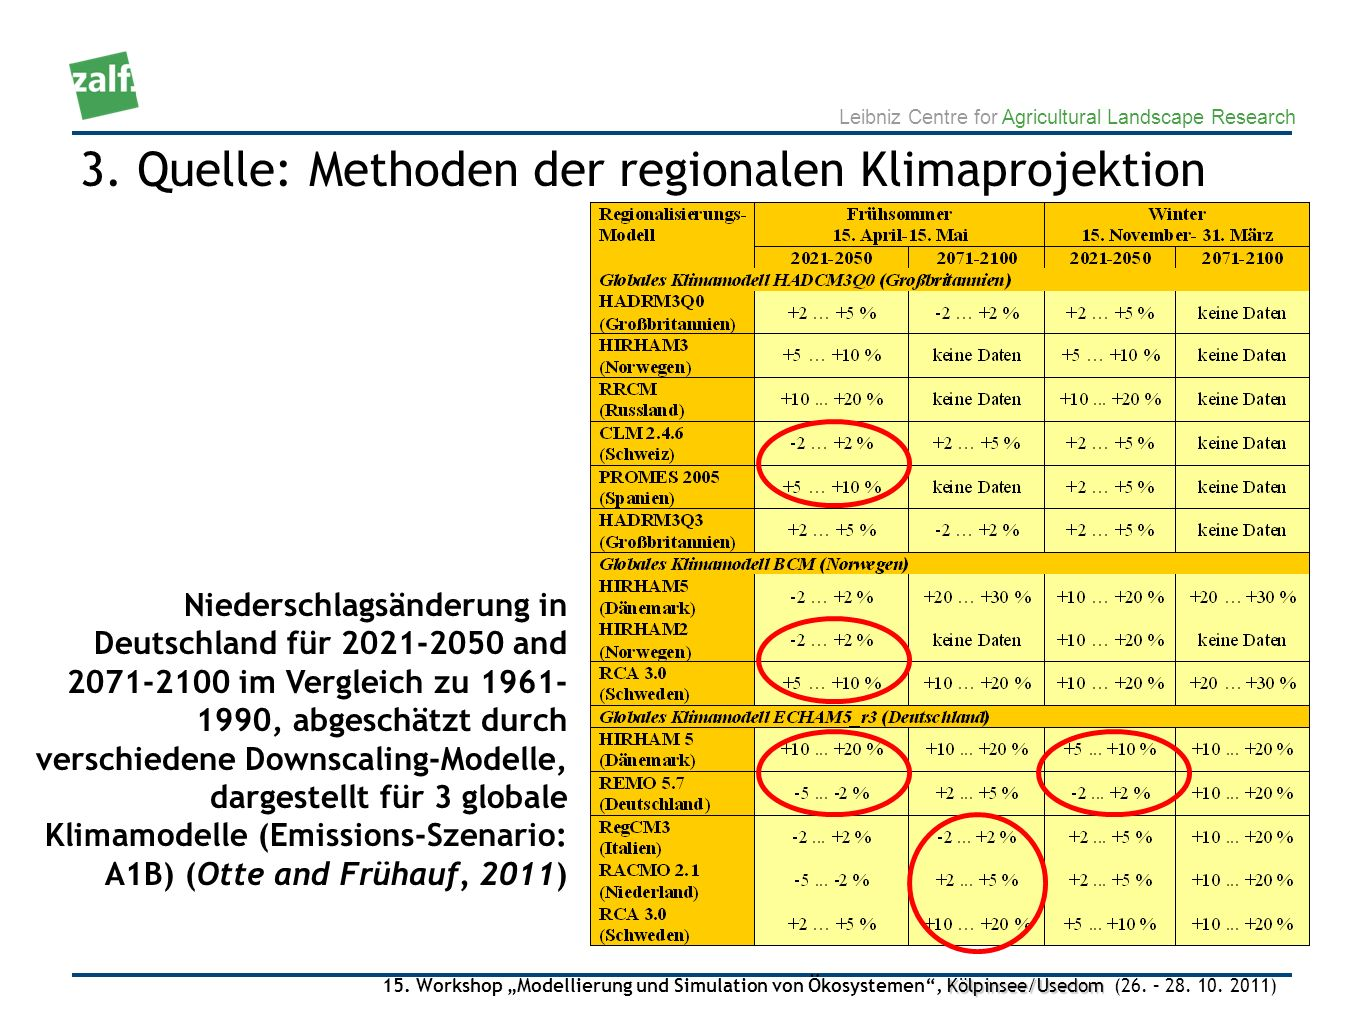 3. Quelle: Methoden der regionalen Klimaprojektion